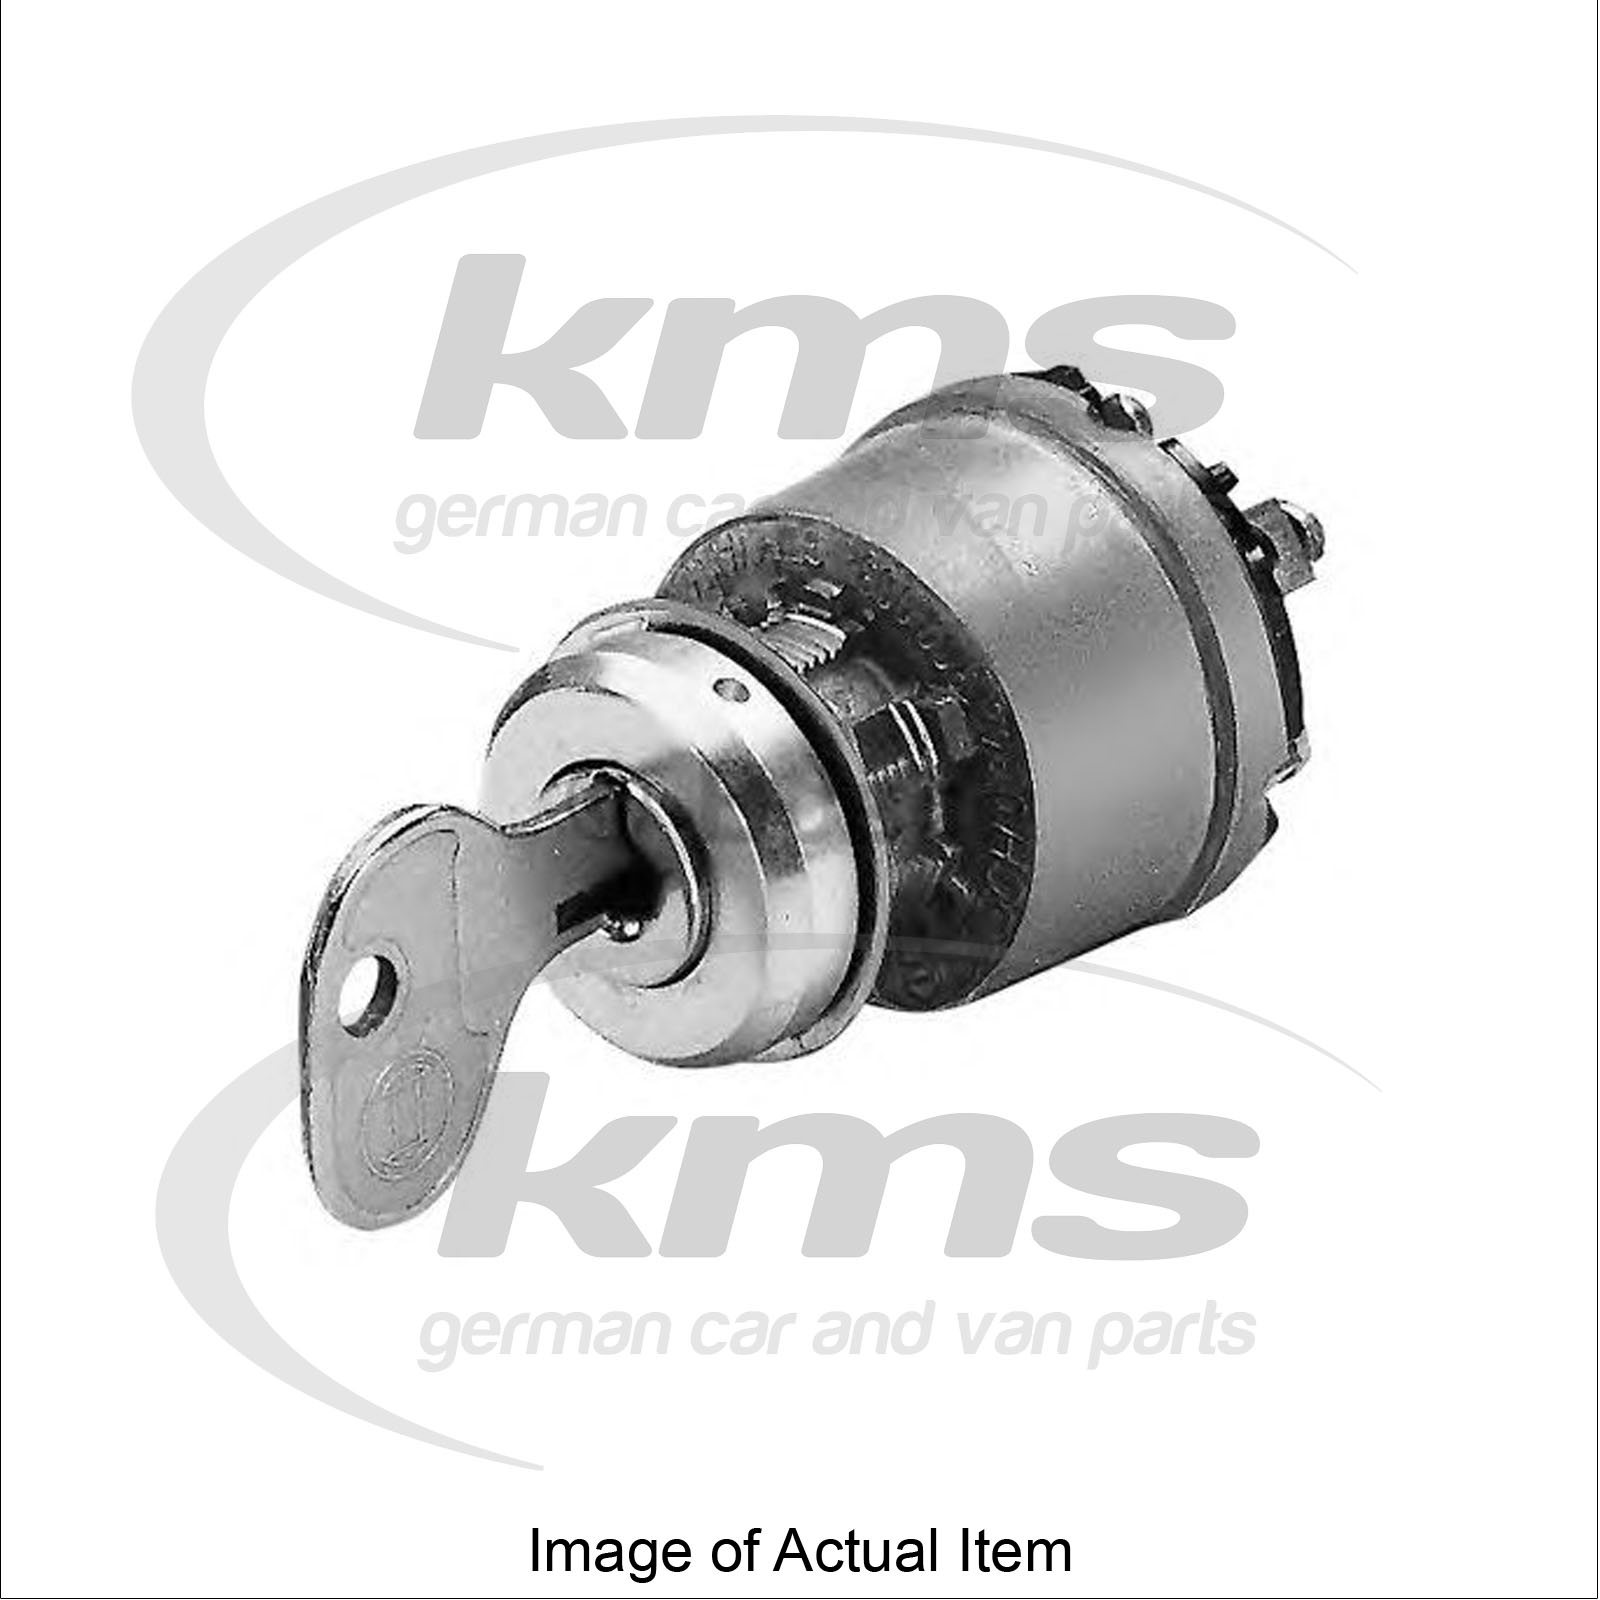 Ignition mercedes switch for Mercedes benz ignition key troubleshooting